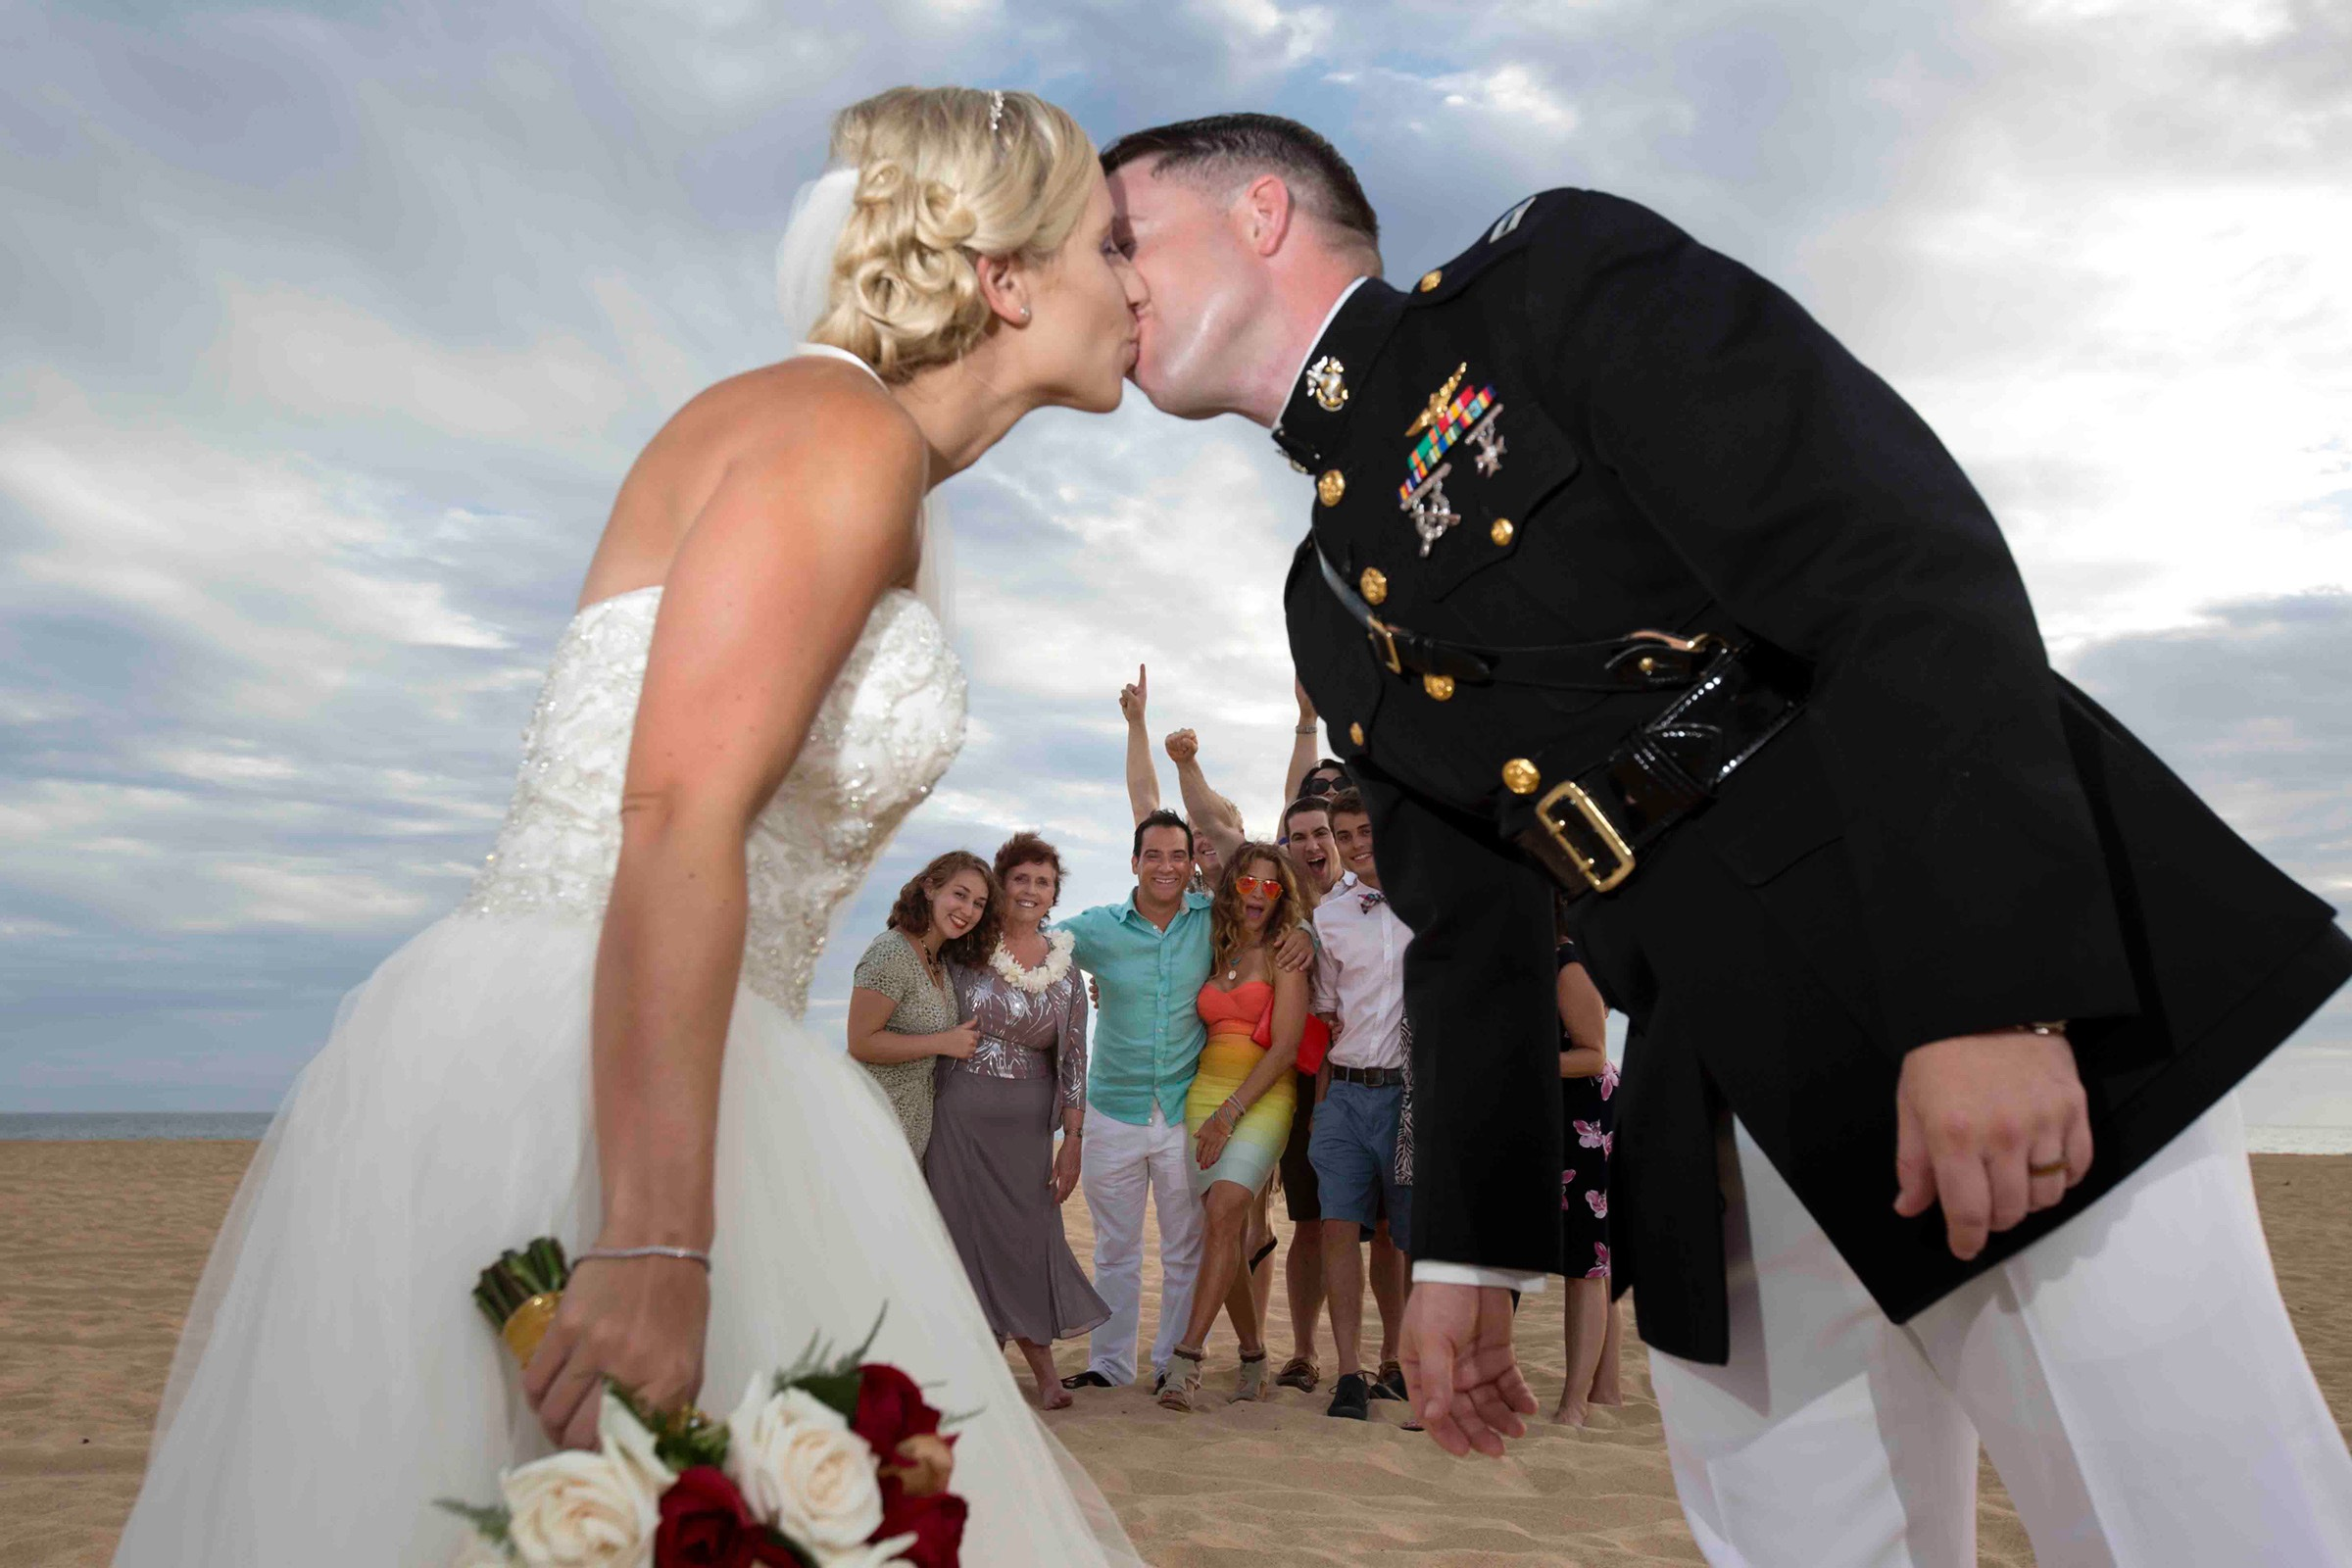 Kauai wedding videographer Difraser  PMRF marine wedding